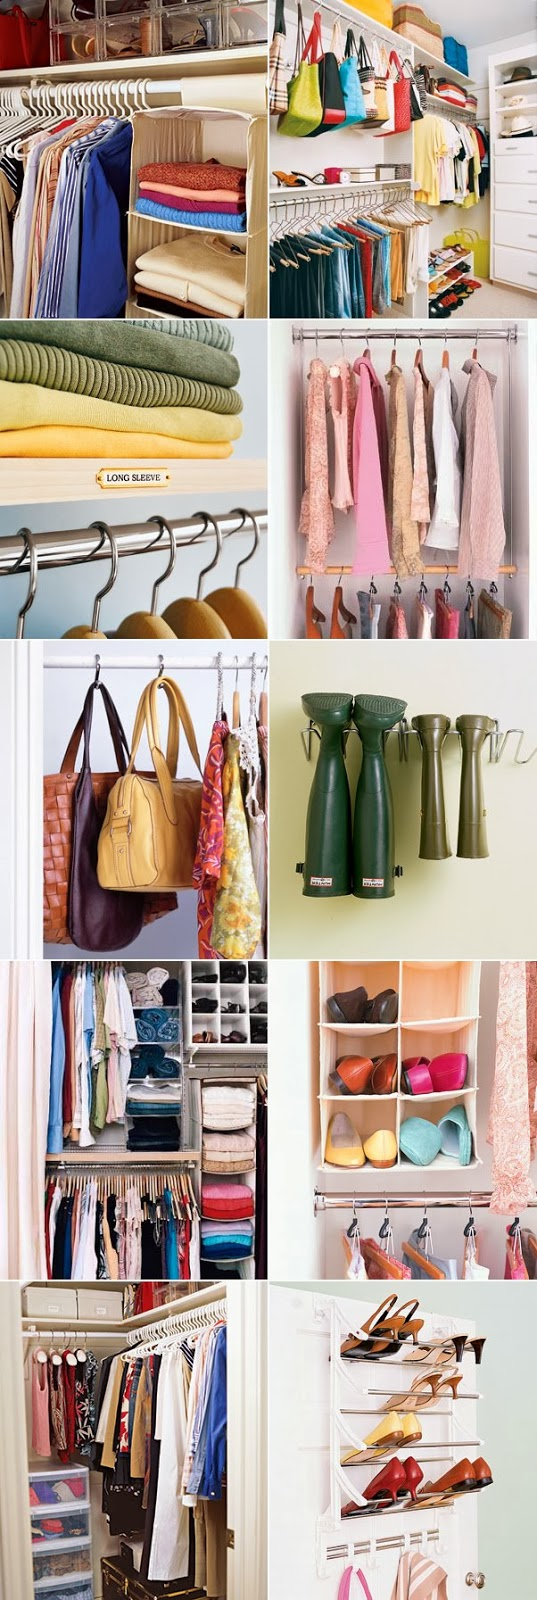 Diy kitchen ideas pinterest - 31 Tips And Ideas To Organize Your Closet Diy Craft Projects